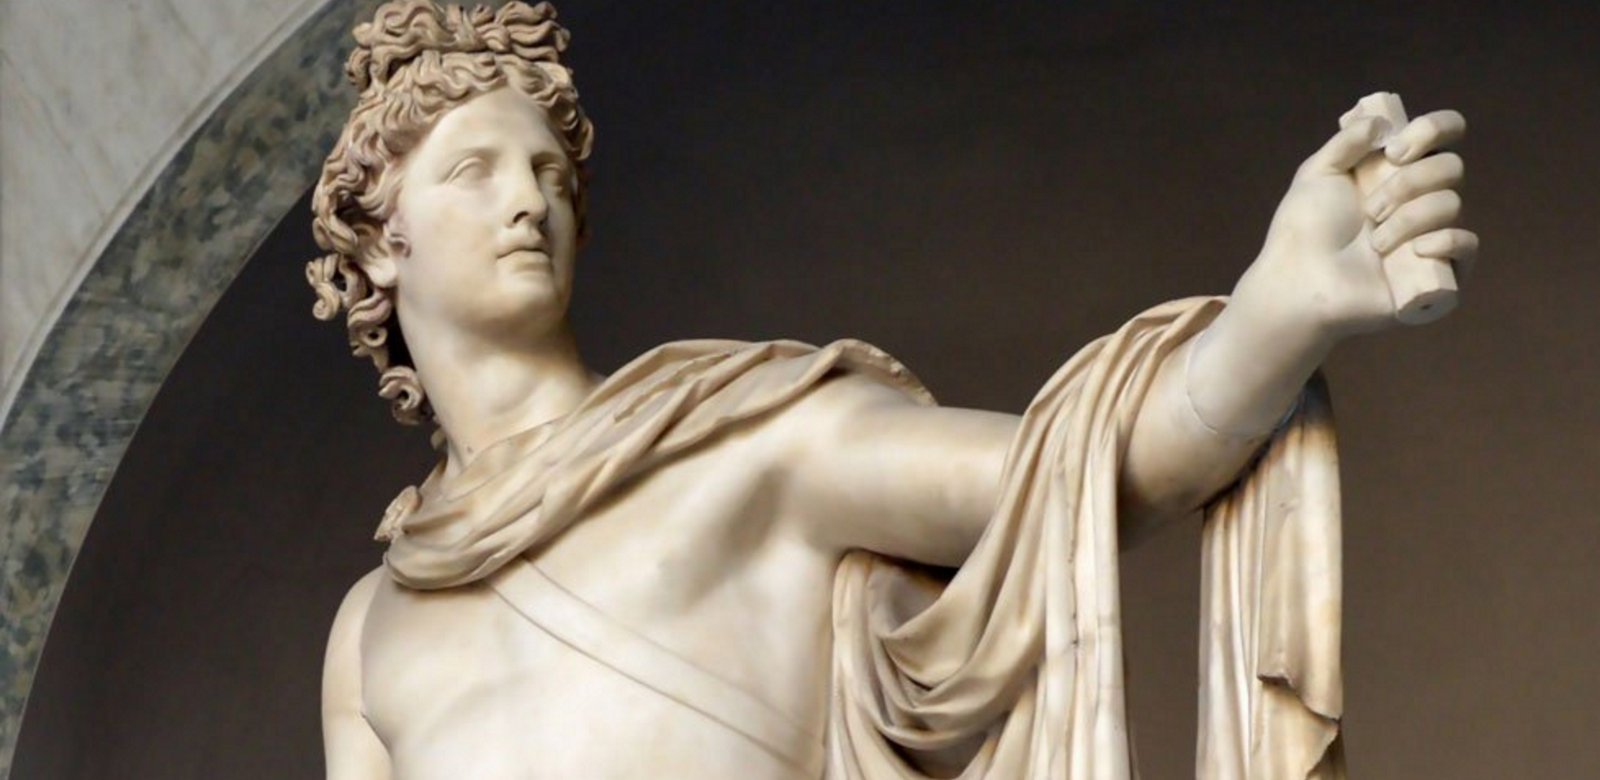 ranking ancient greek gods and goddesses by their lovemaking skills